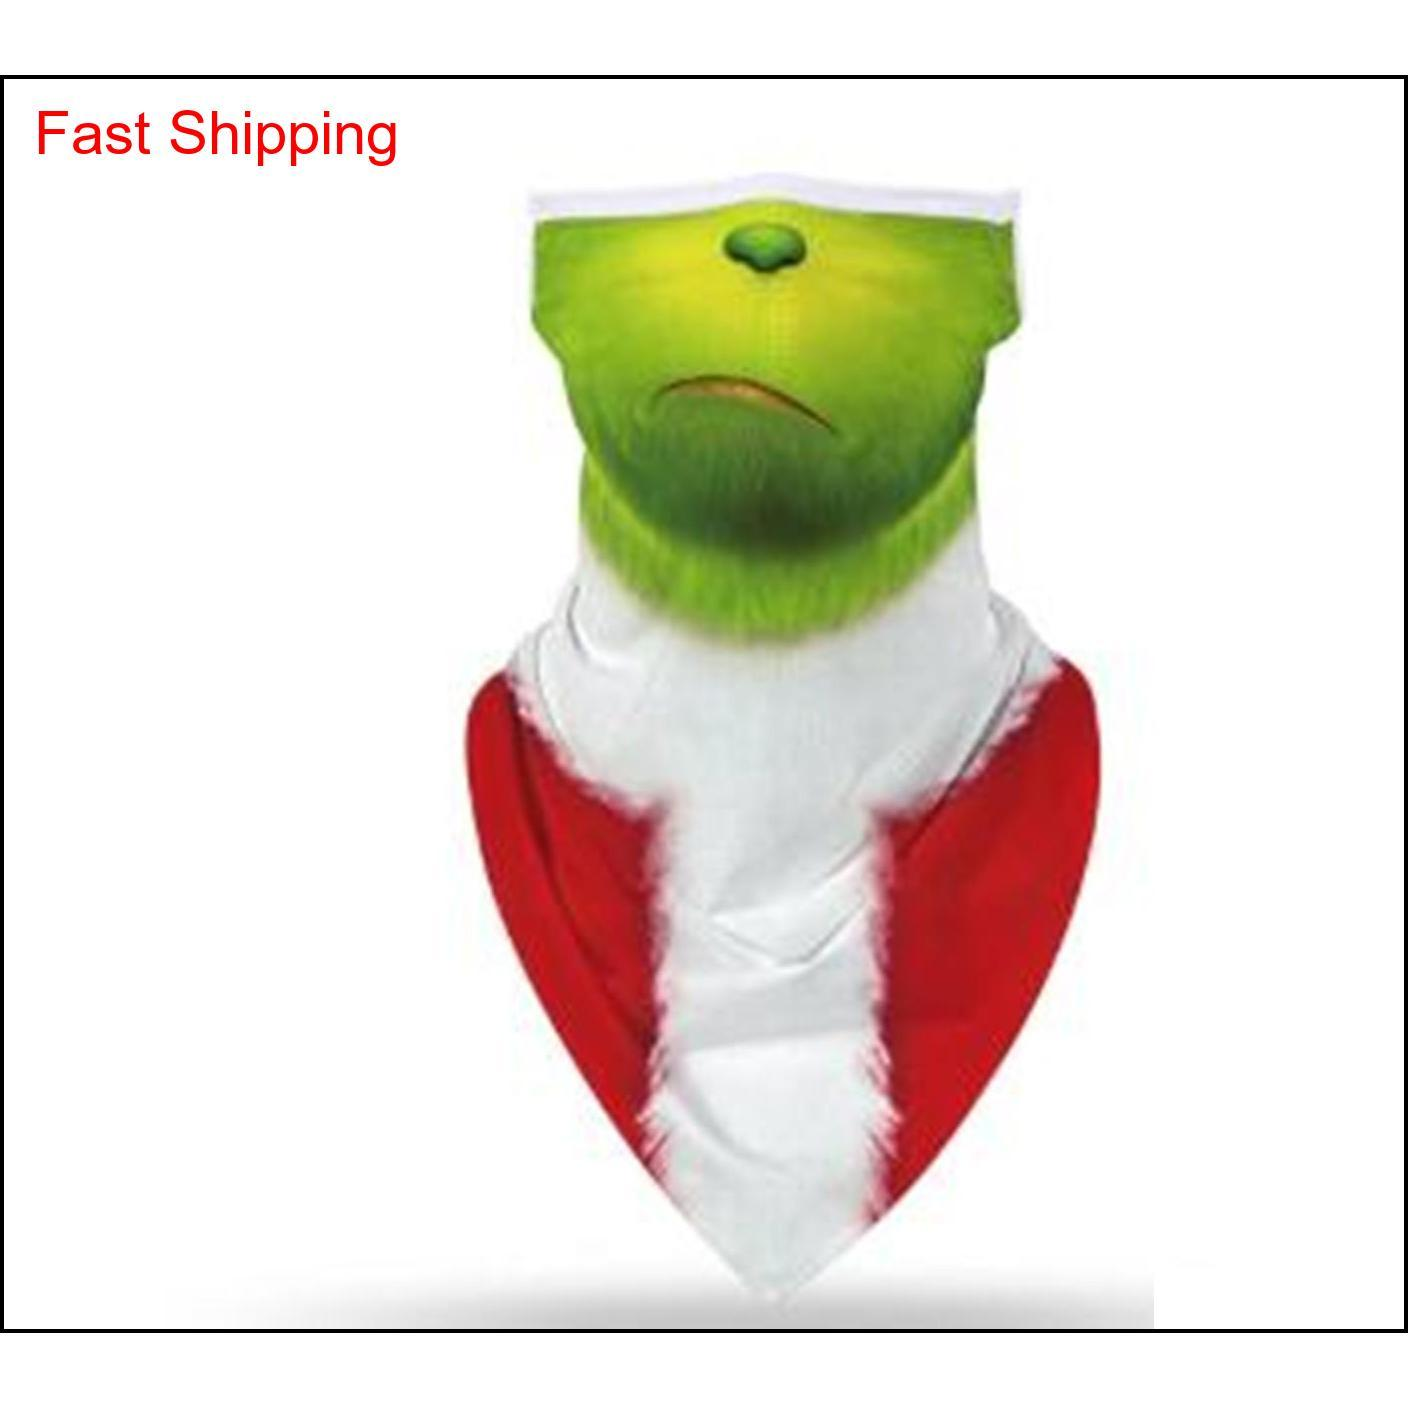 How The Grinch Stole Christmas Snowman Motorcycle Cycling Neck Scarf Masks Bandana Headband C qylhKM bdehome